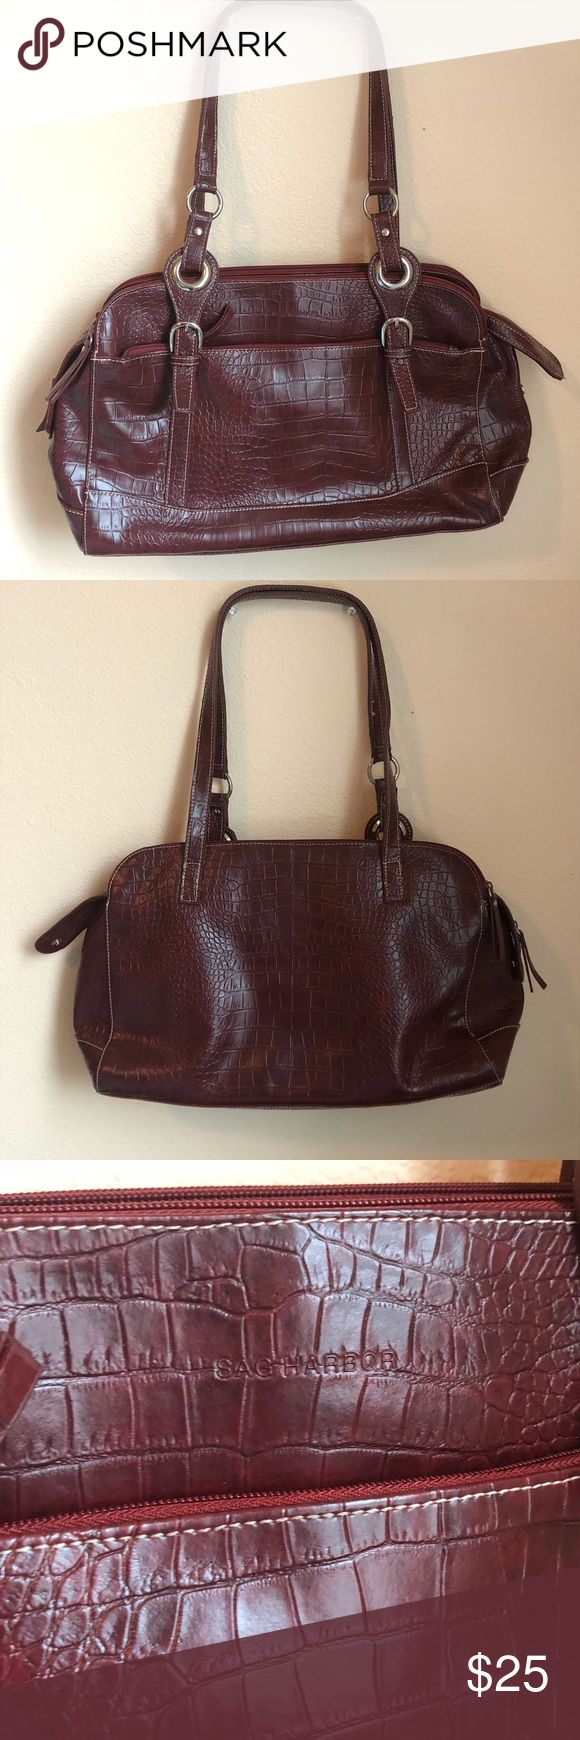 Maroon Crocodile Leather Purse Maroon purse. Faux leather. 3 separate sections in the center. Literally like brand new! Used once. Brand is sag harbor. • No Trades • Price is firm unless bundled • 15% off of BUNDLES of 3 or more • Saks Fifth Avenue Bags